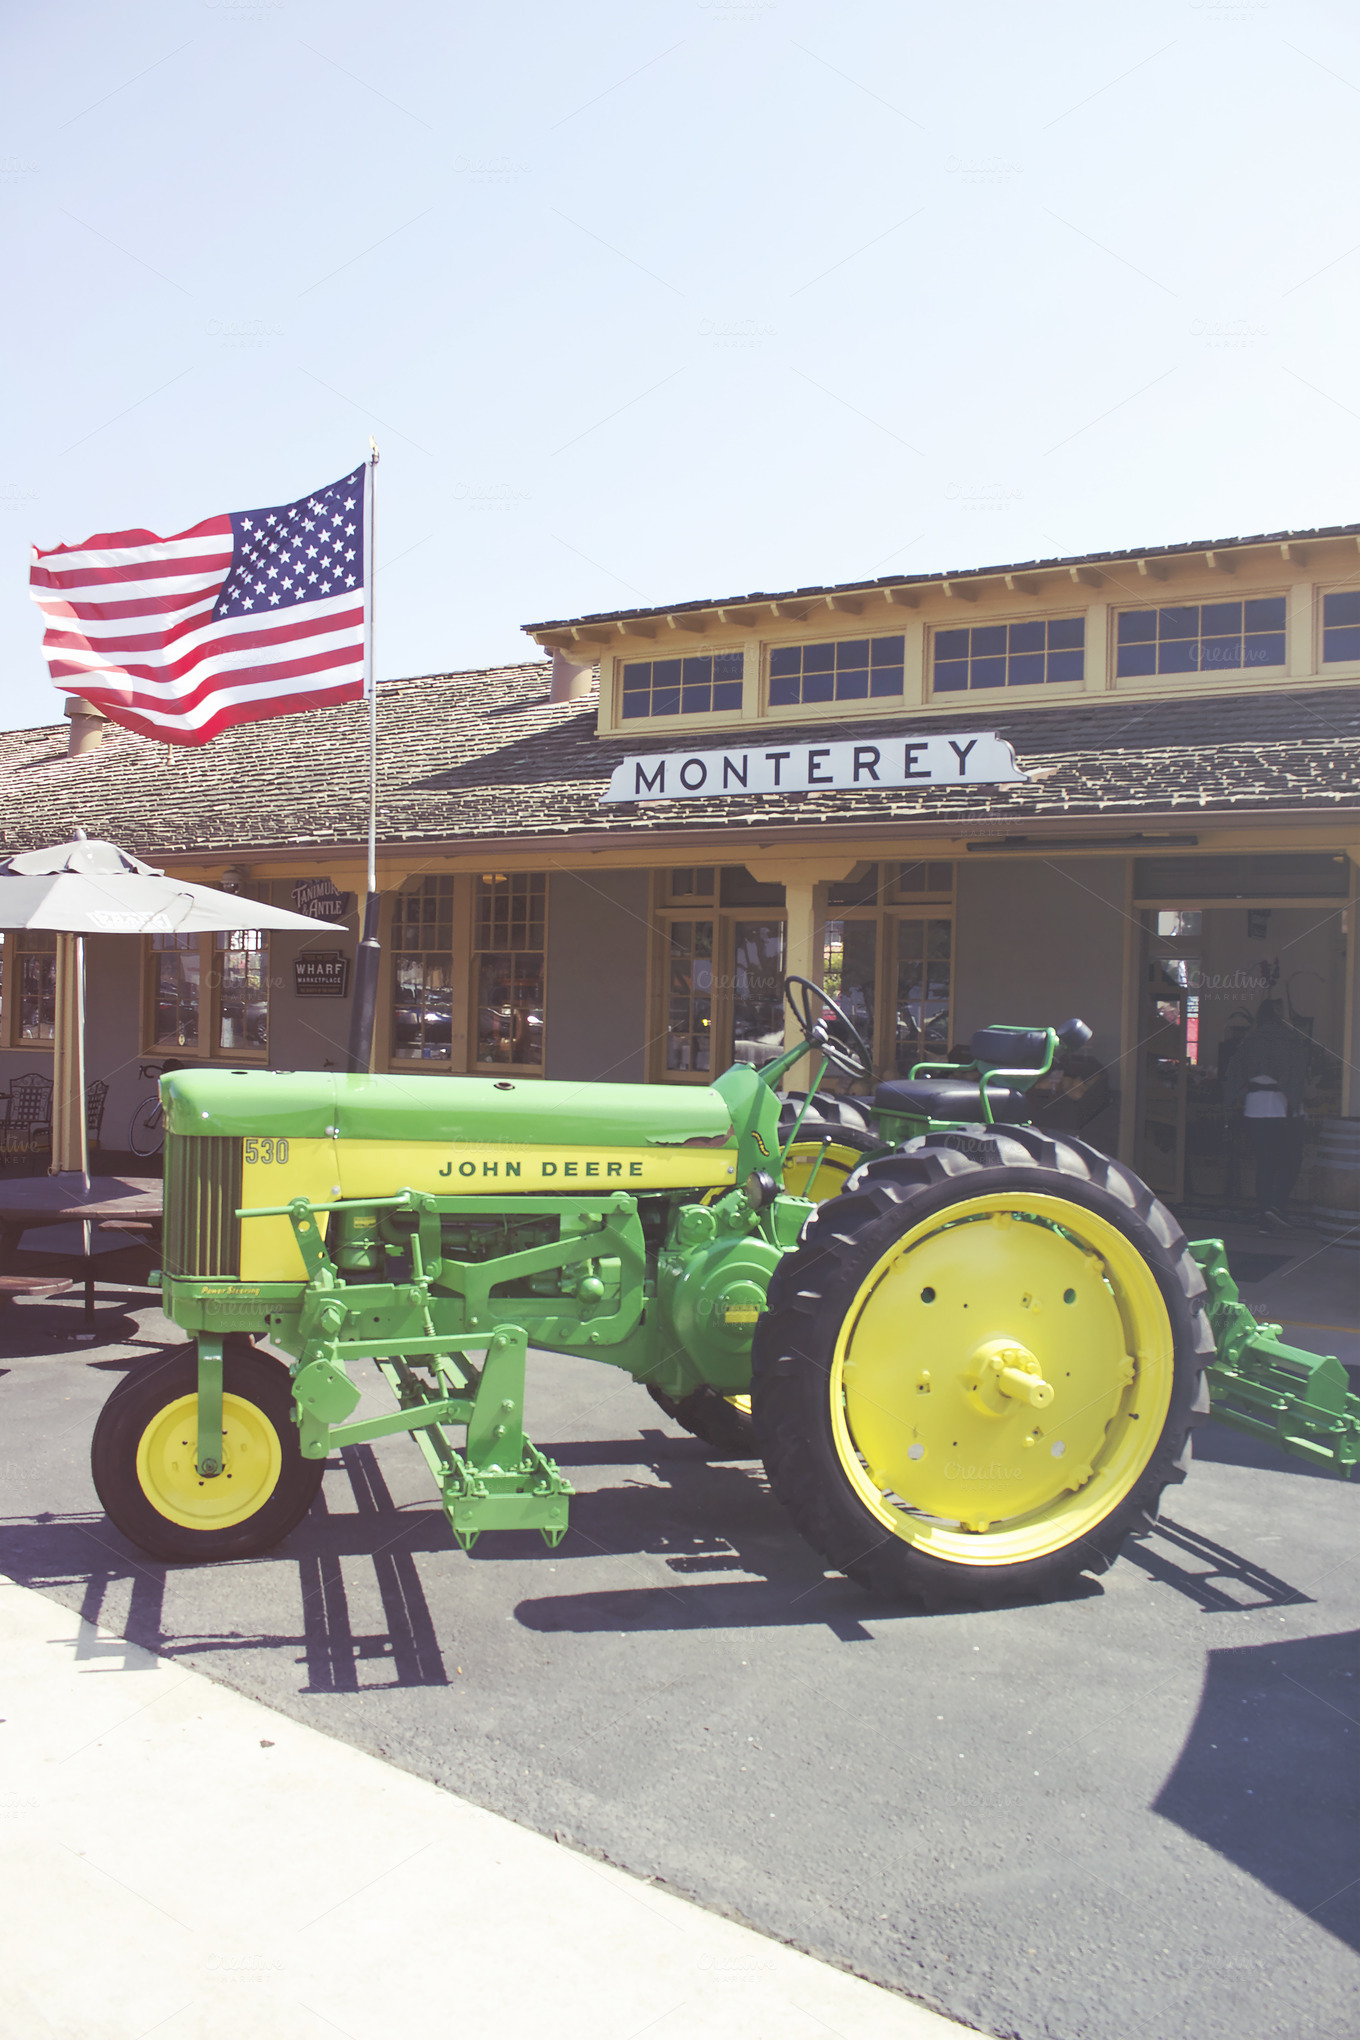 john deere monterey general store architecture photos on creative market. Black Bedroom Furniture Sets. Home Design Ideas